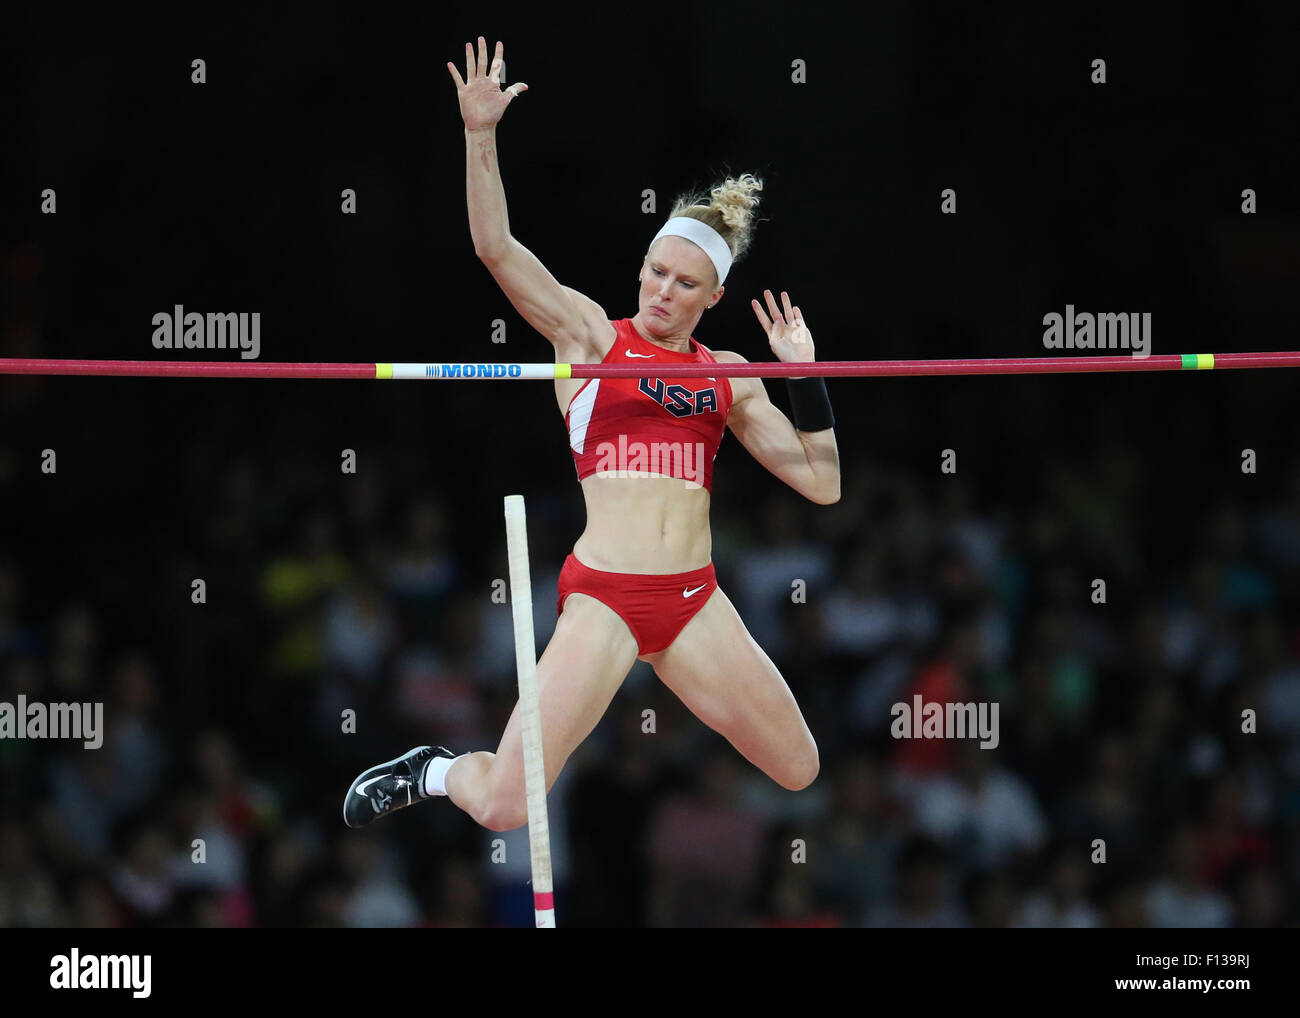 Beijing, China. 26th Aug, 2015. Sandi Morris of USA in action during the women's Pole Vault final of the Beijing - Stock Image